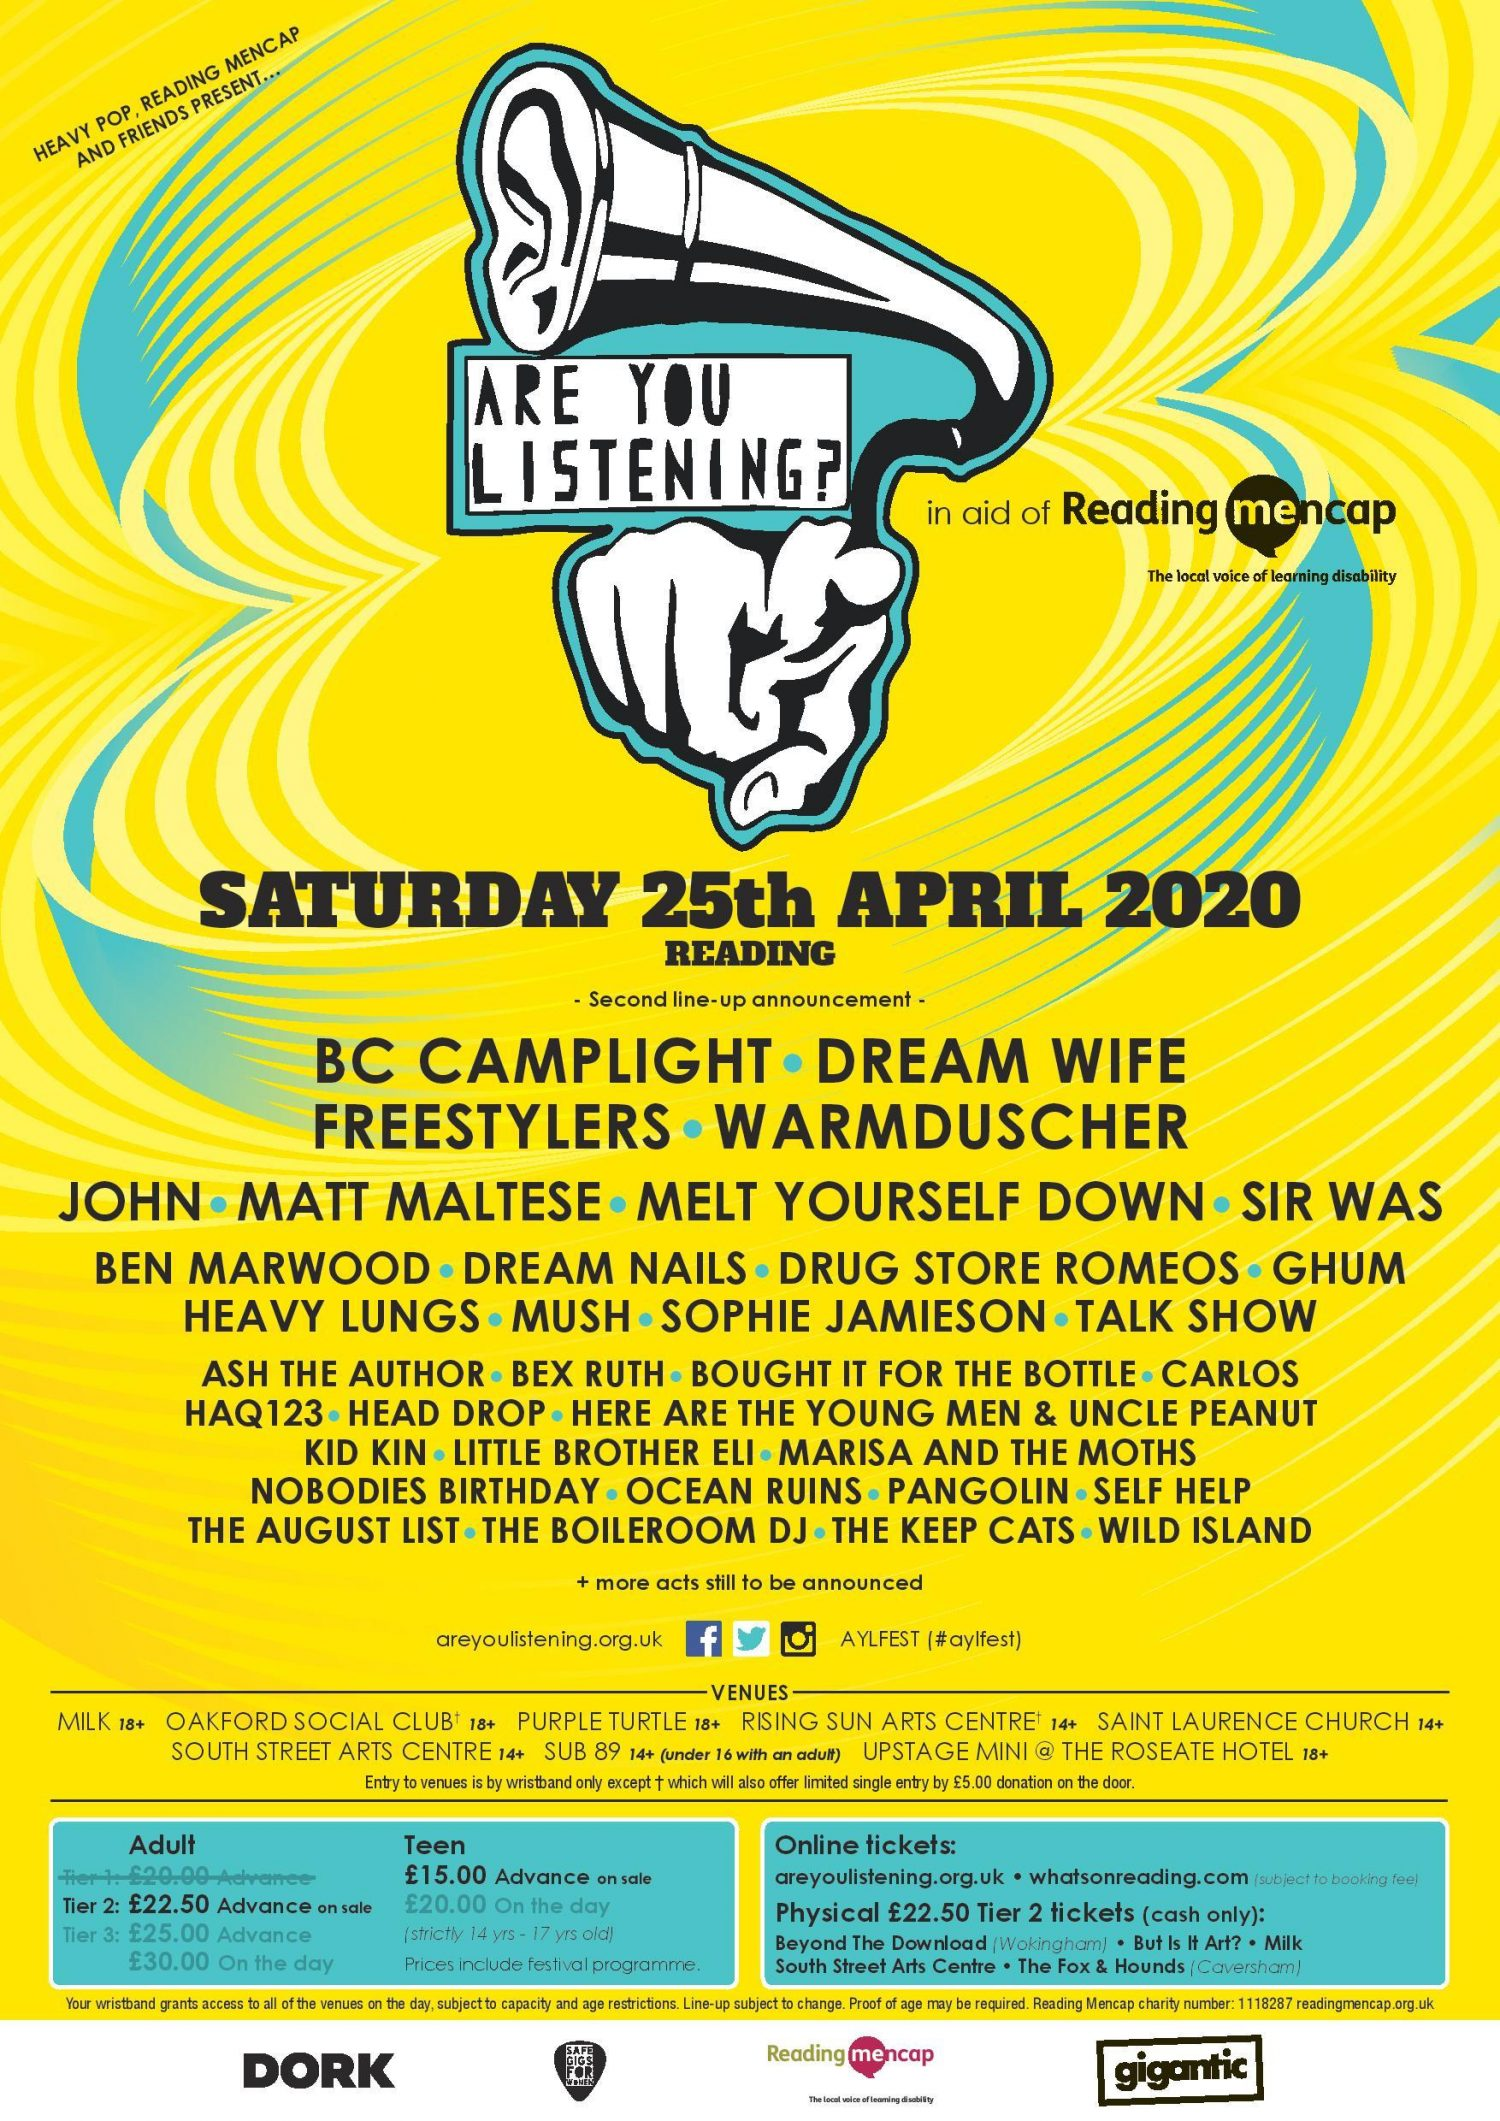 Another twenty acts have been announced for this year's Are You Listening? Festival